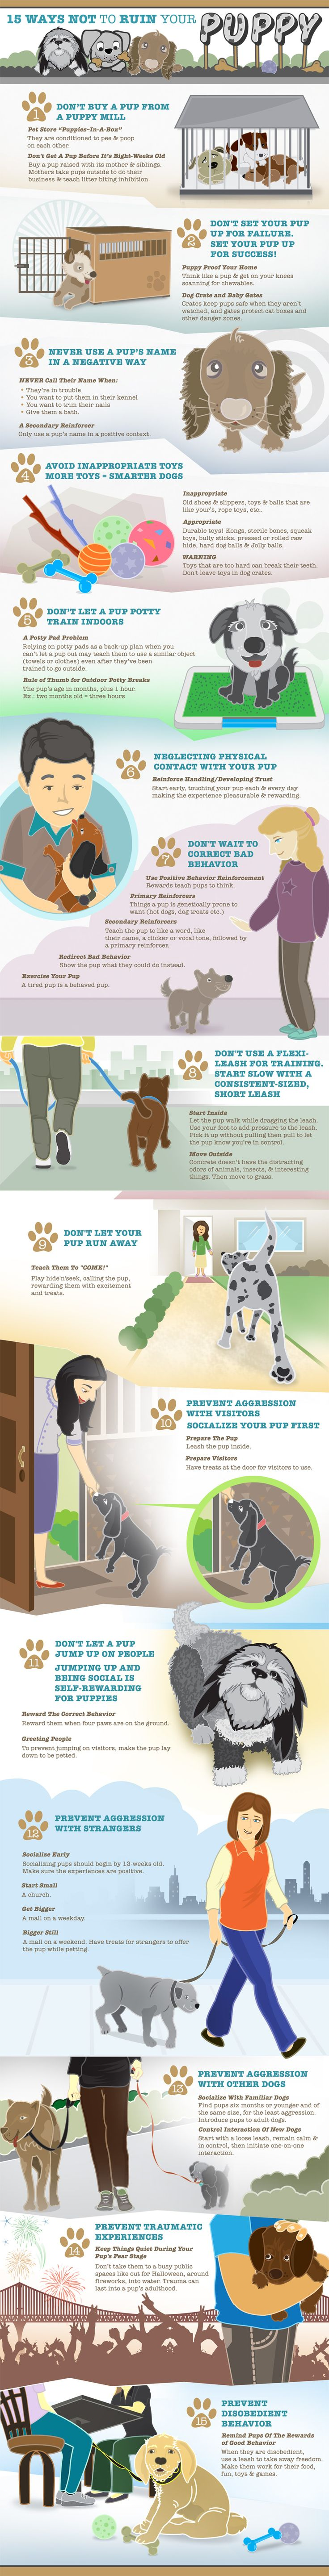 15 Ways Not To Ruin Your Puppy - almost makes me want a puppy right now. great ideas!!